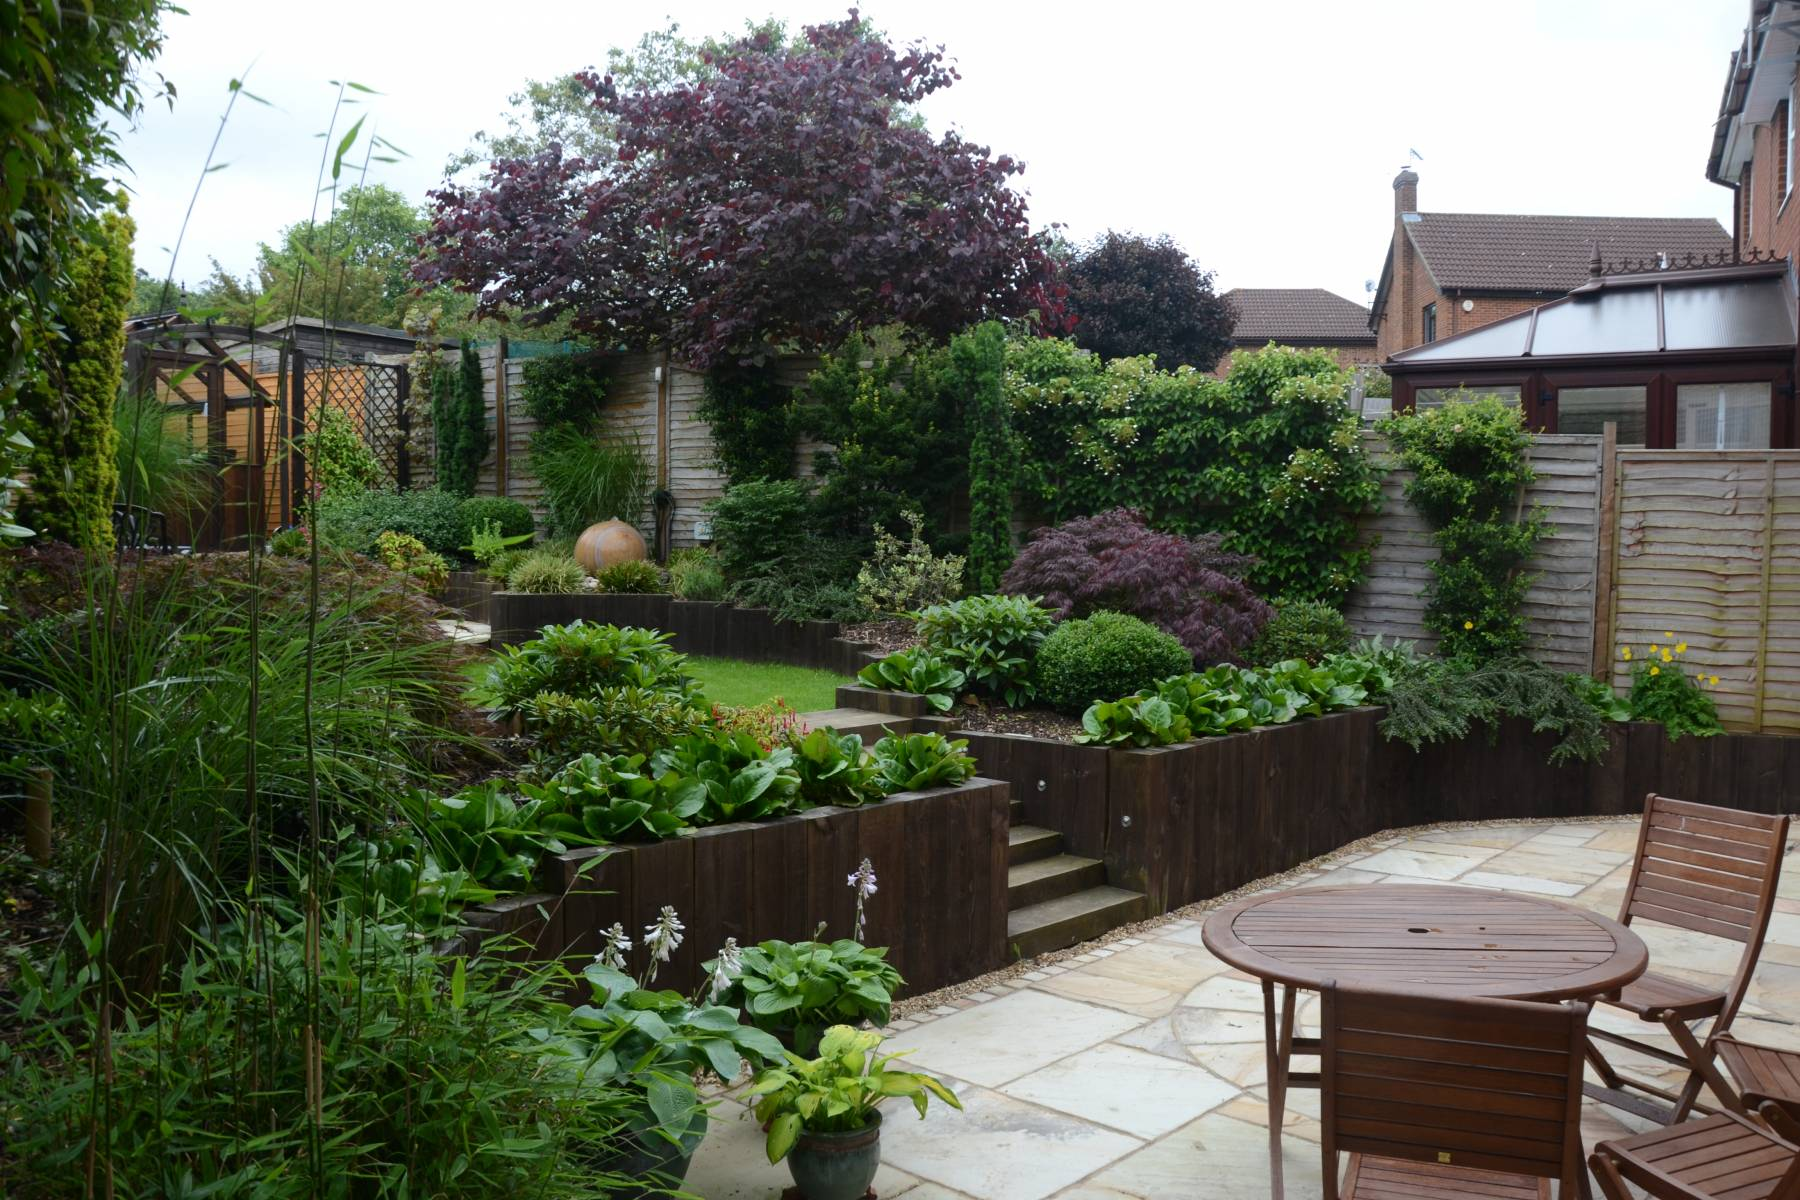 patio railway sleepers water feature planting scheme